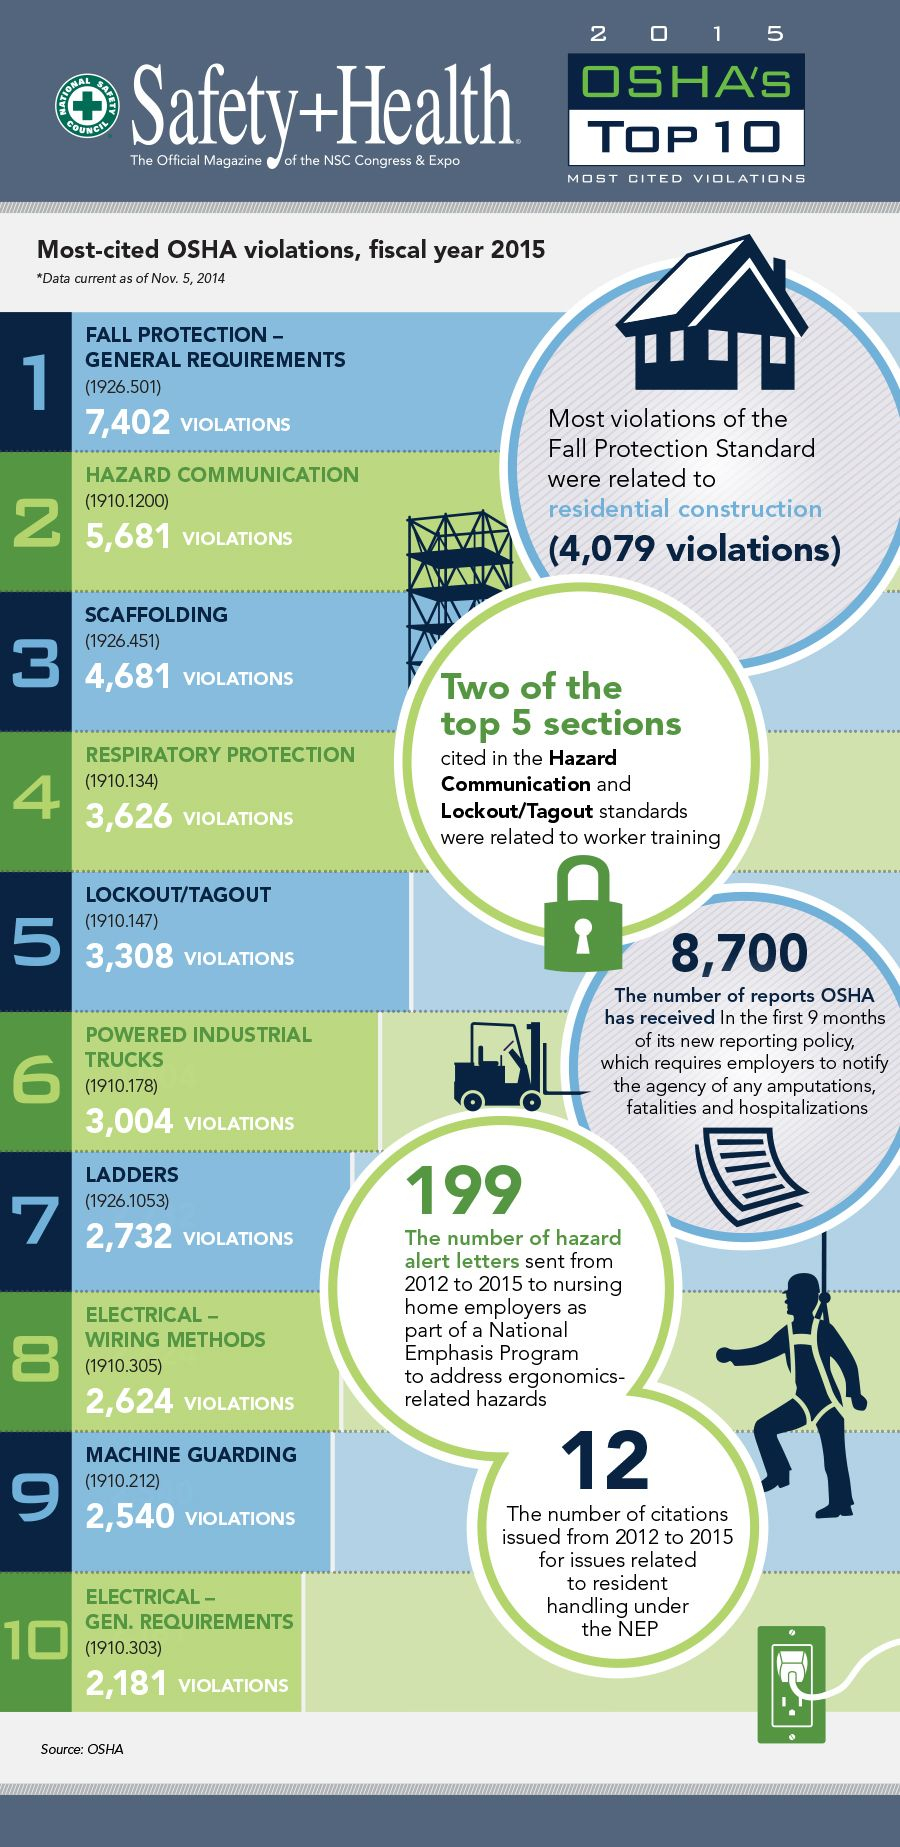 OSHA's Top 10 most cited violations for fiscal year 2015